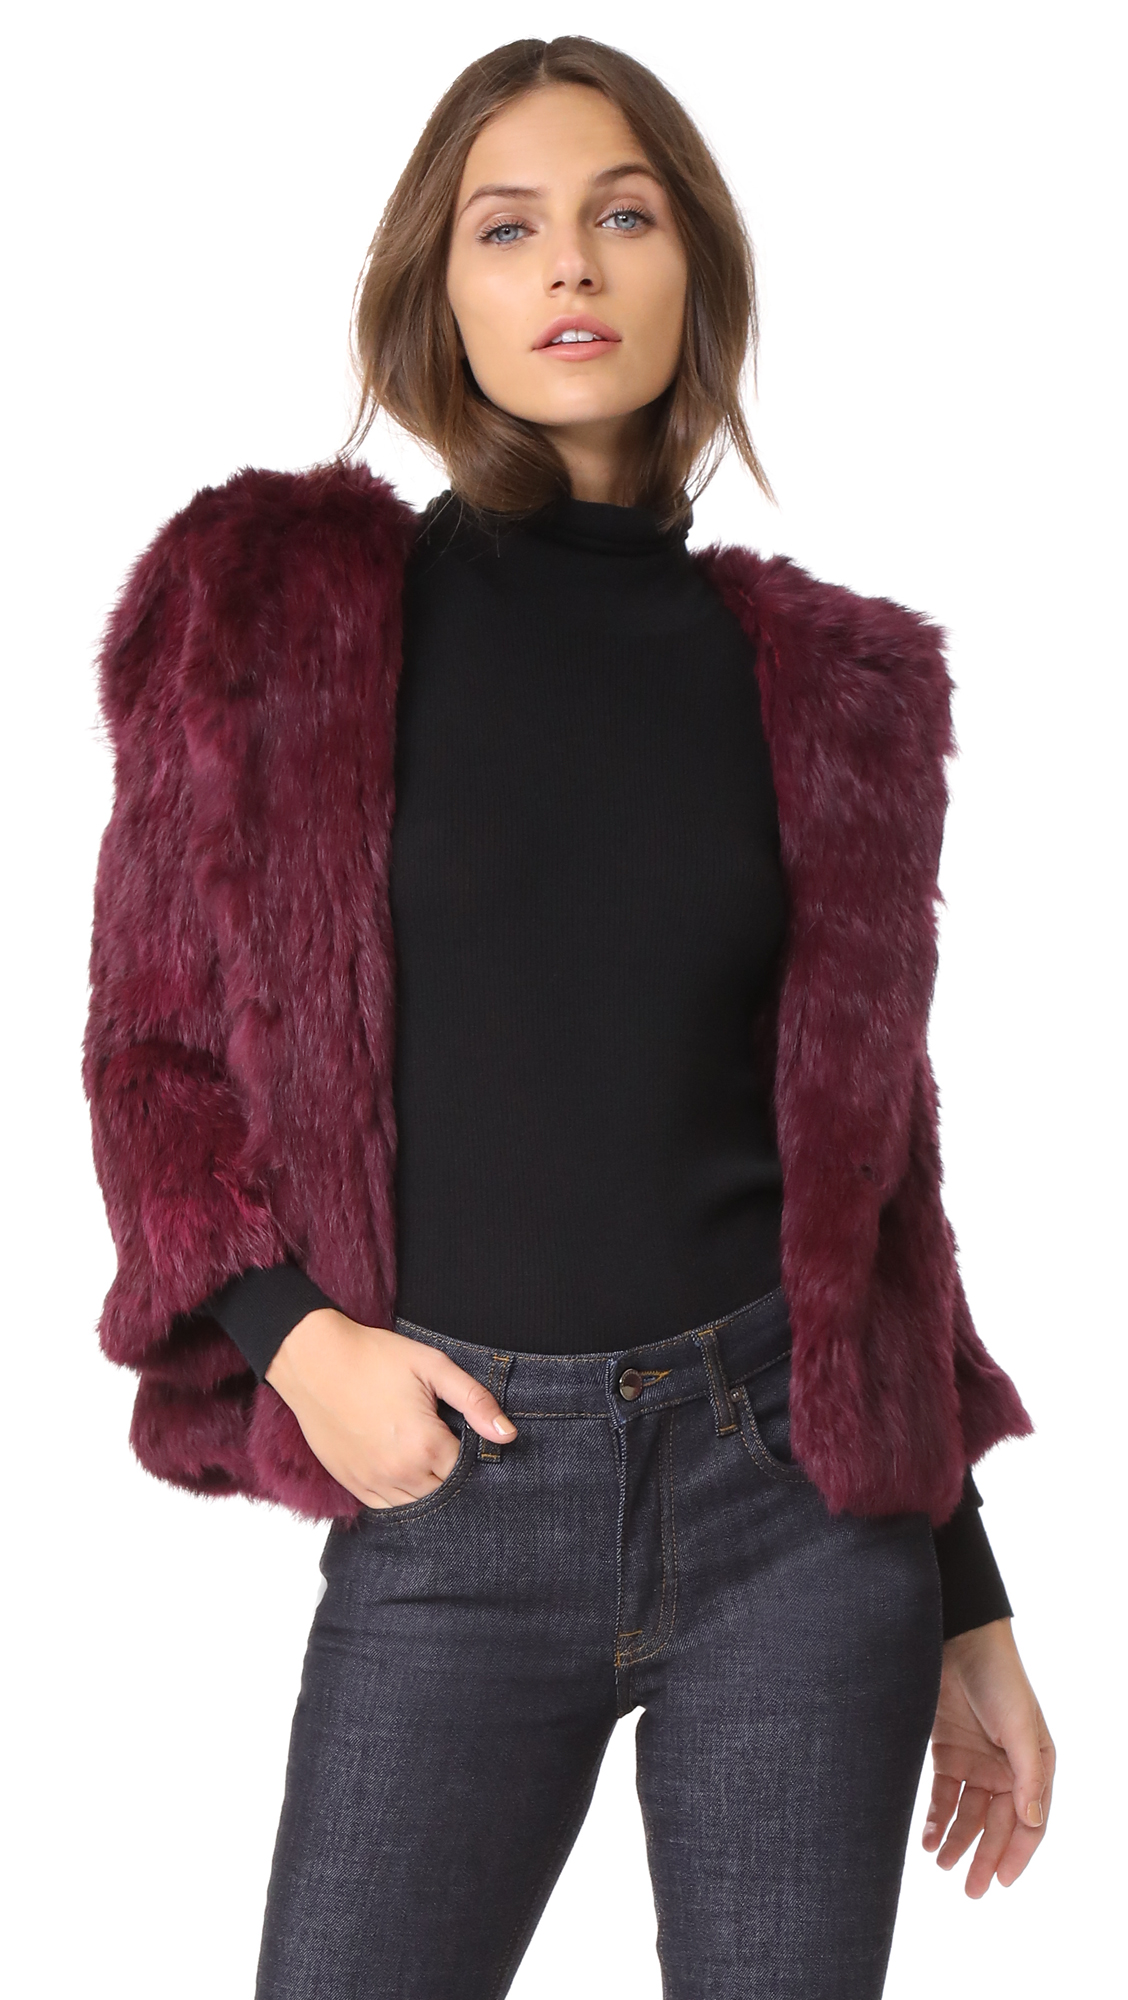 Rachel Zoe Rose Jacket In Boysenberry